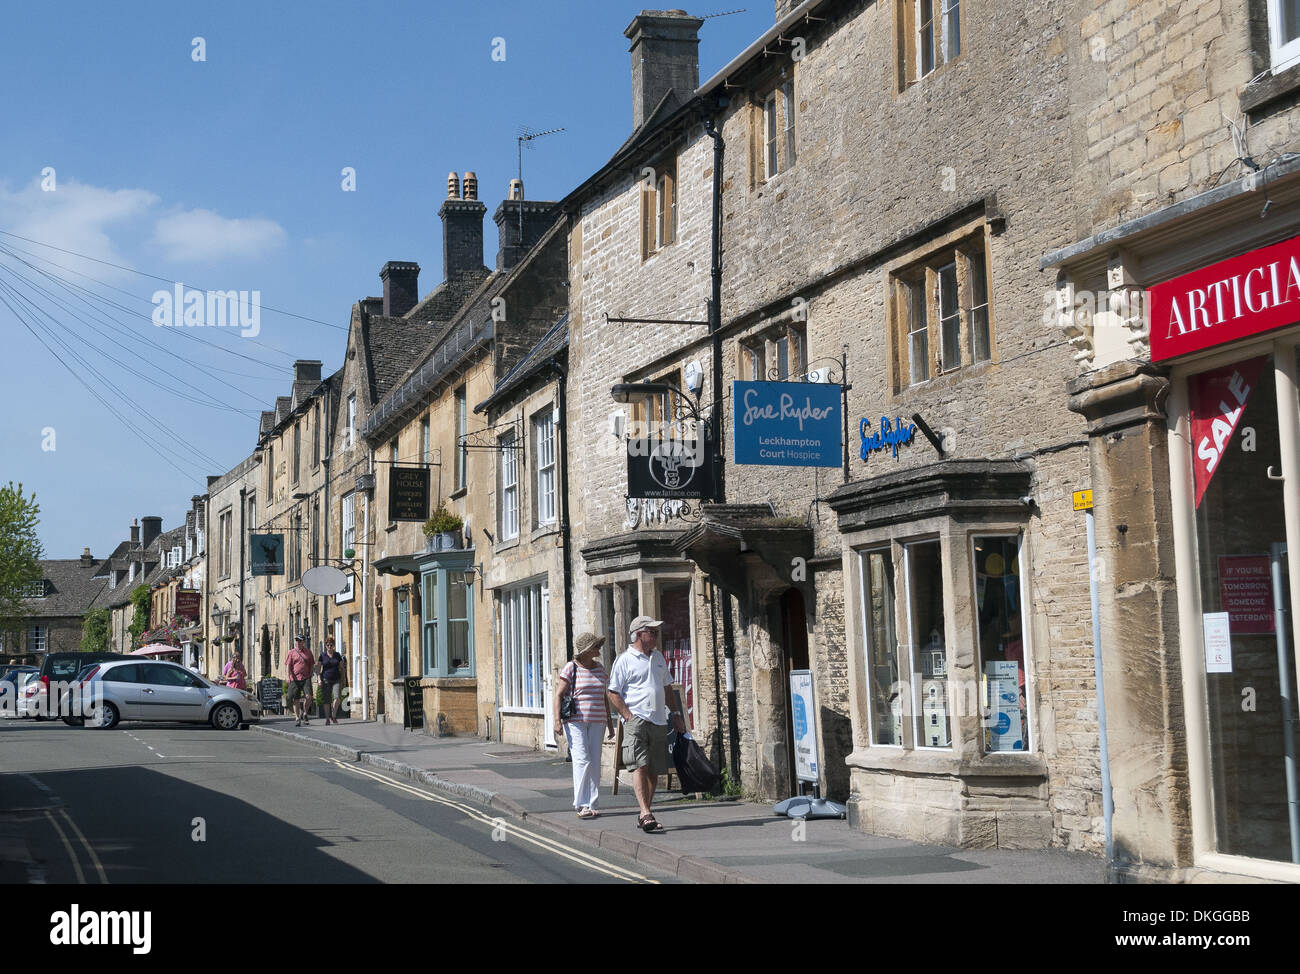 High street shops in the small market town of Stow-On-The-Wold in Gloucestershire, England Stock Photo